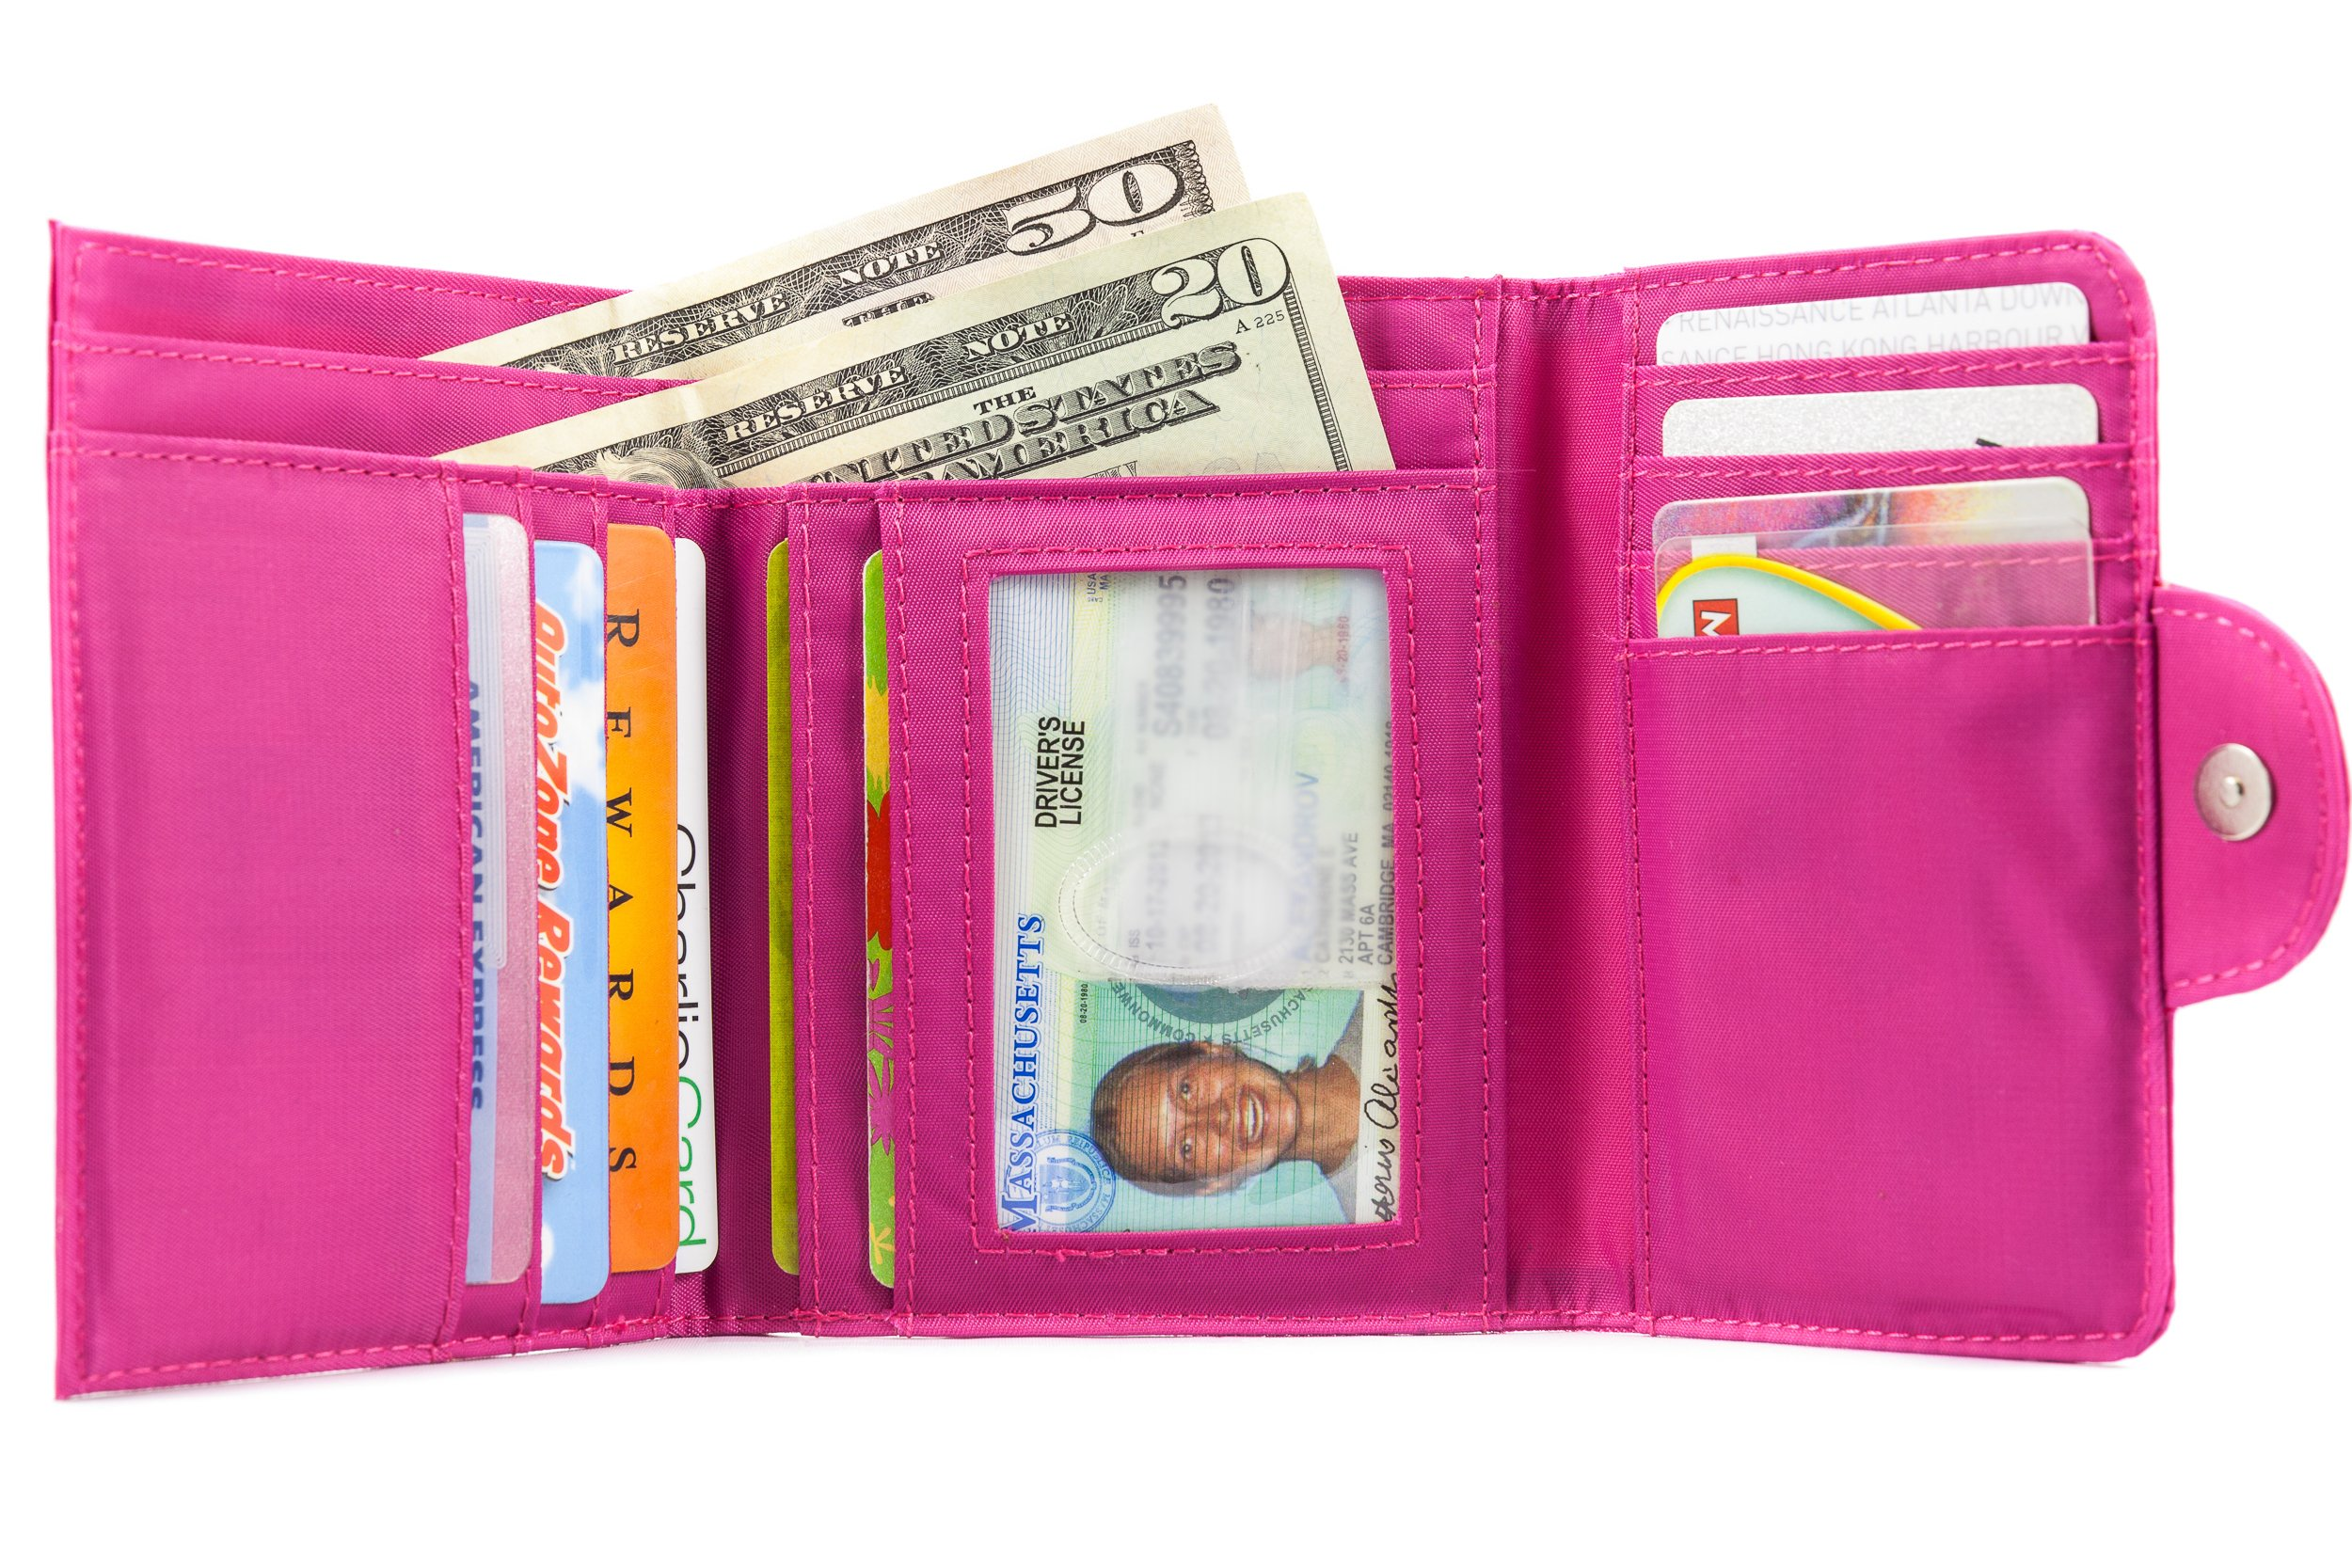 Big Skinny Women's Trixie Tri-Fold Wallet, Holds Up to 30 Cards, Fuchsia